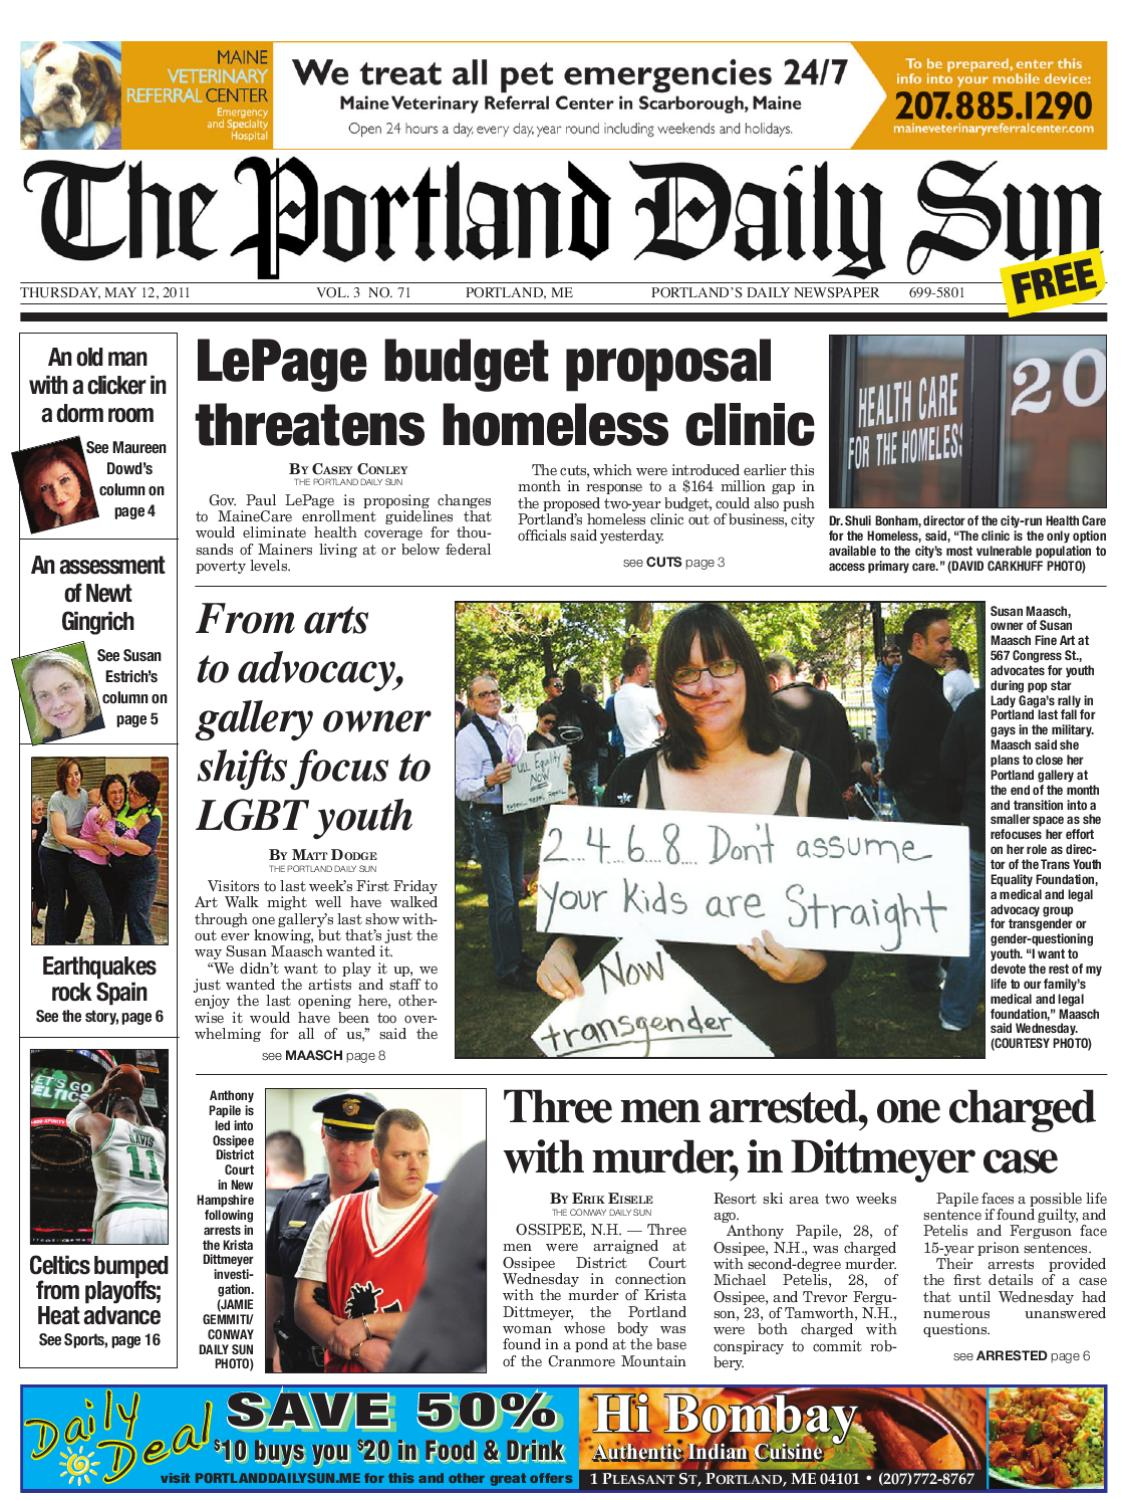 Estrich Legen The Portland Daily Sun Thursday May 12 2011 By Daily Sun Issuu